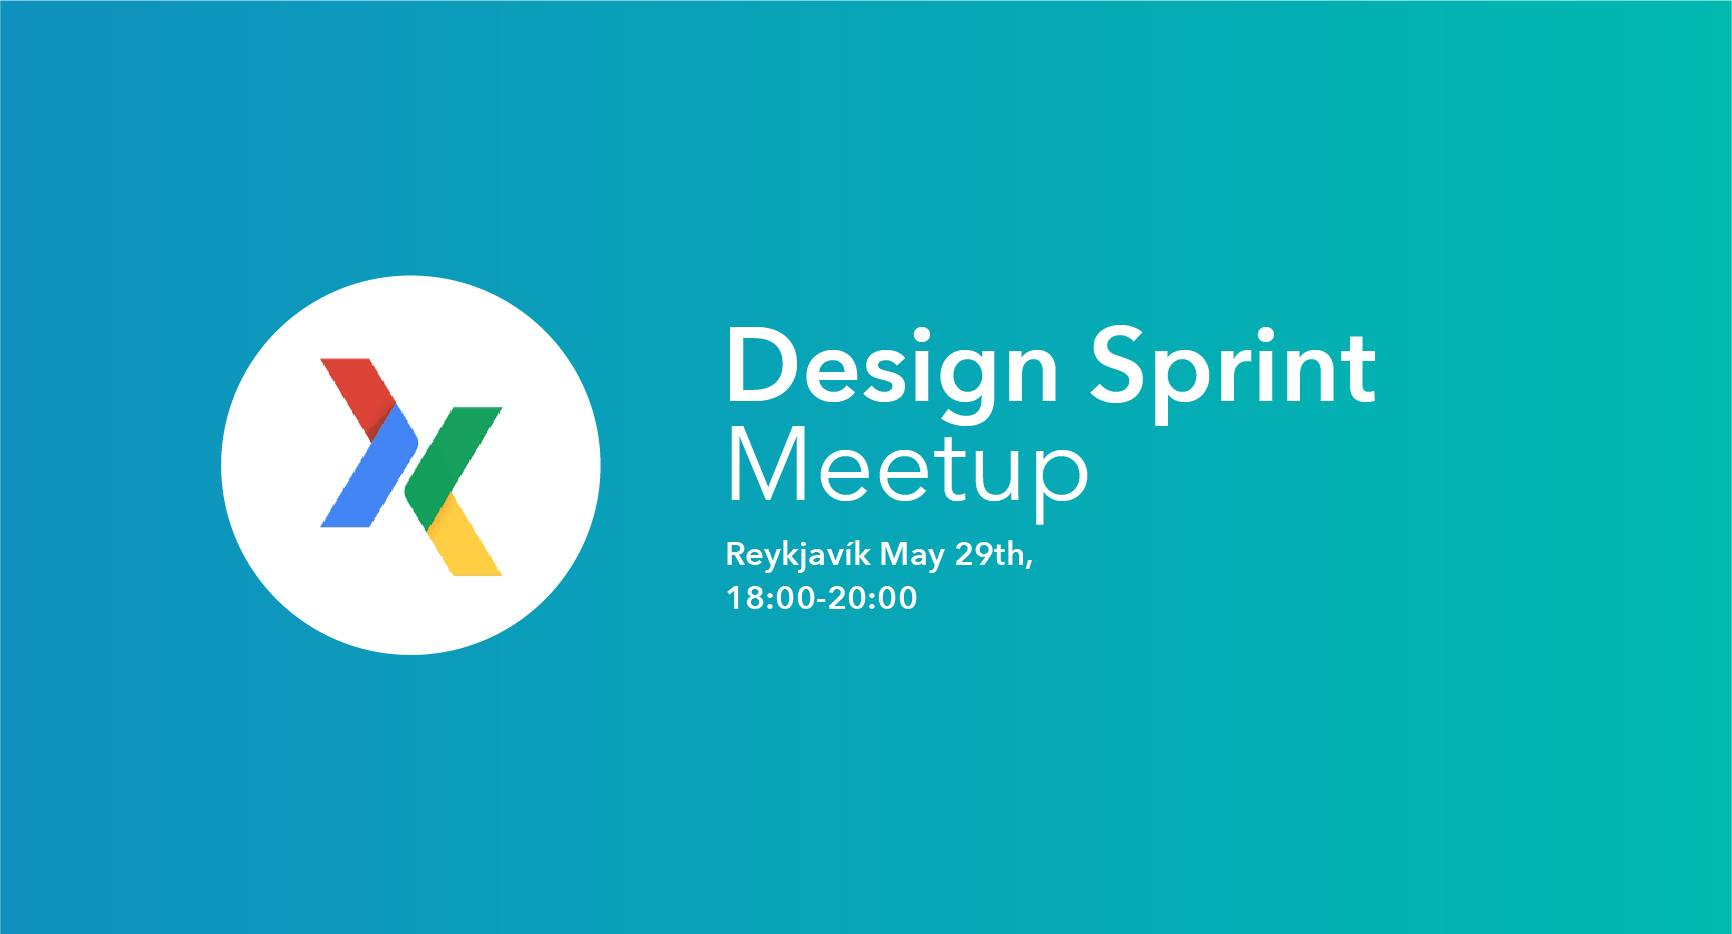 Design Sprint Meetup in Reykjavik, Tuesday May 22nd, 18:00, with TeaCup Lab